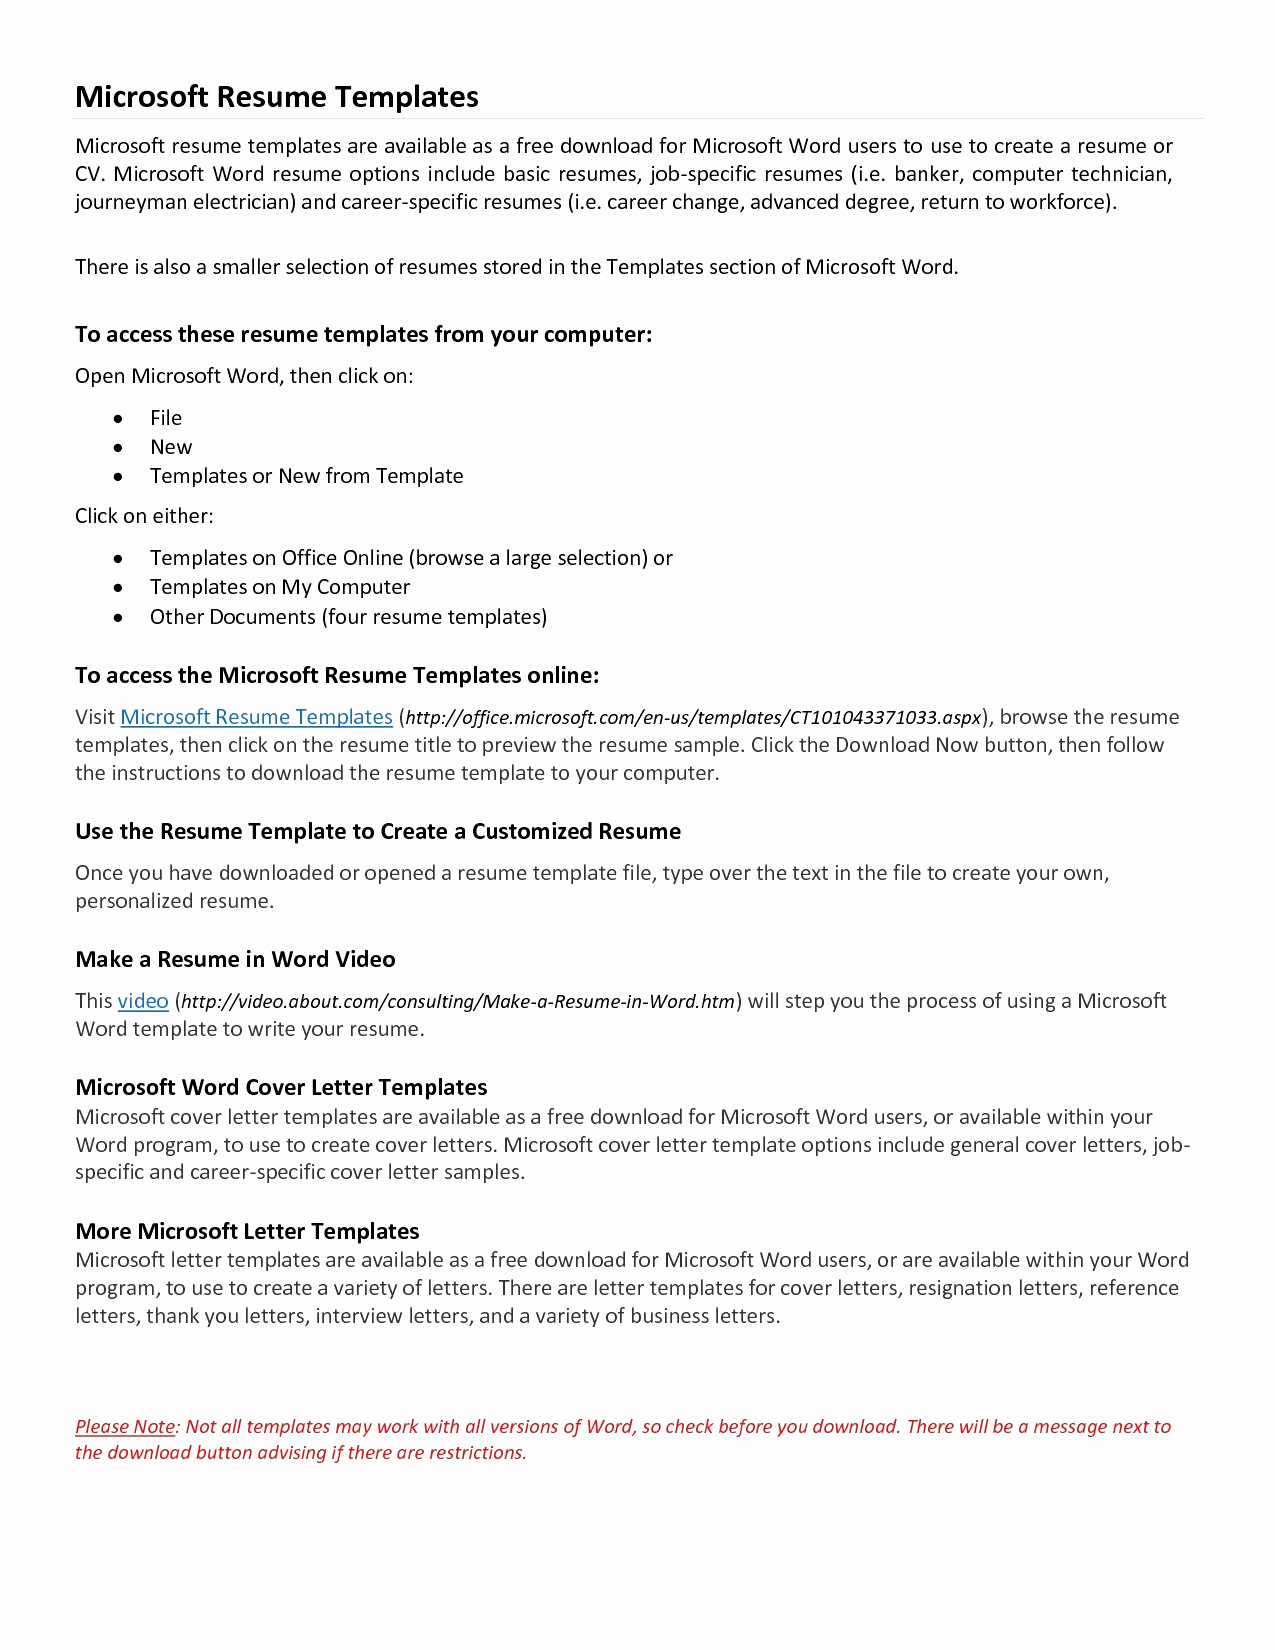 Free Recommendation Letter Template for Employment - Awesome Re Mendation Letter Template for Job